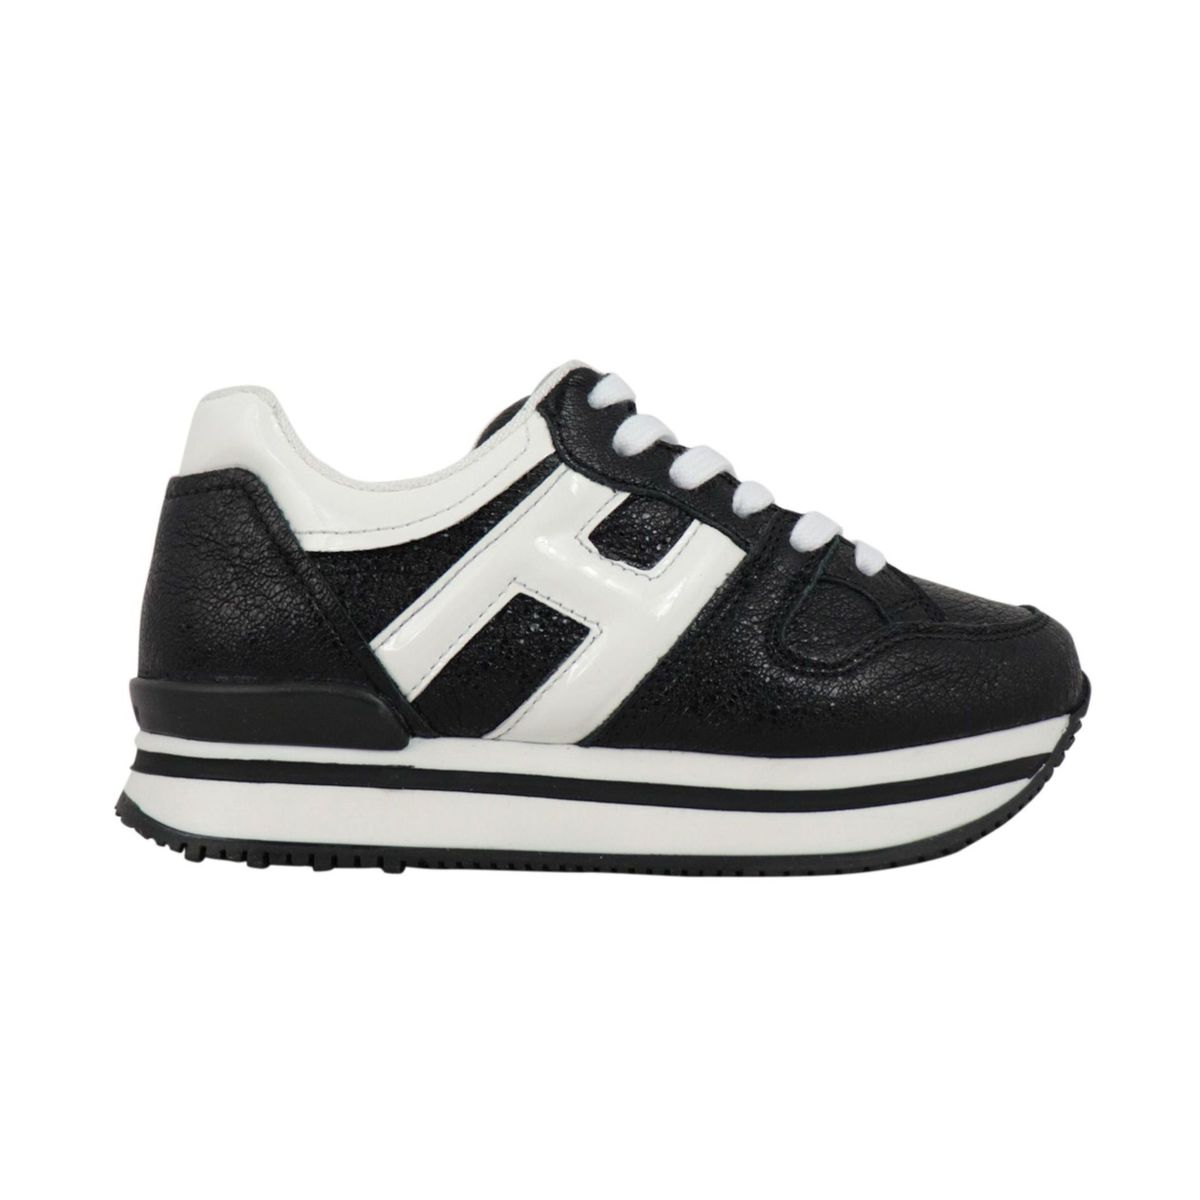 Maxi sneakers in leather with contrasting H Black white Hogan